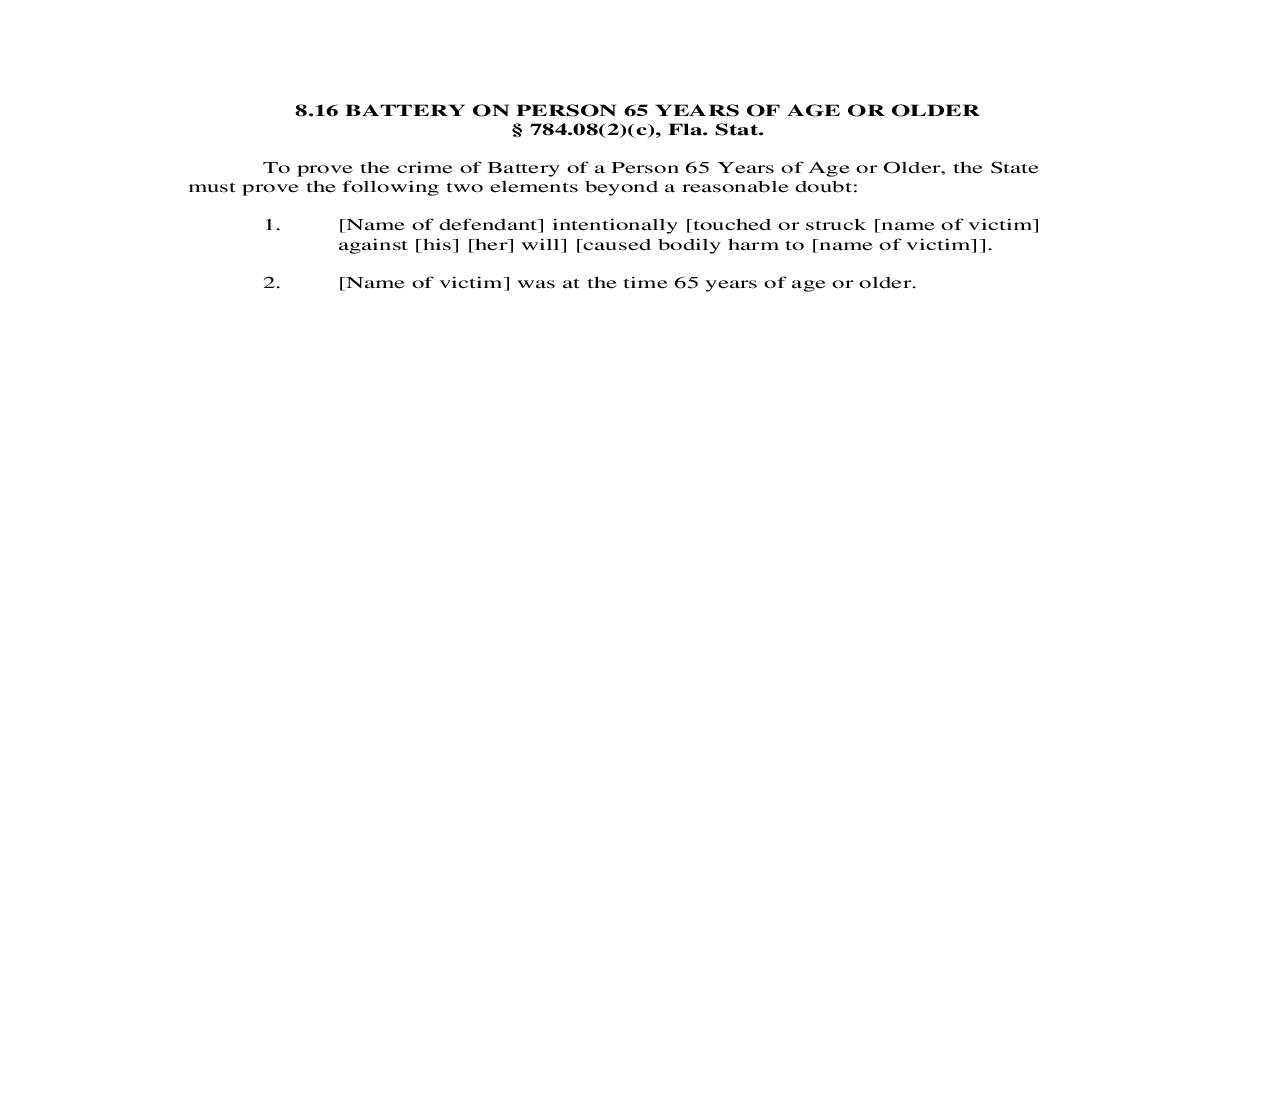 8.16. Battery On Person 65 Years Of Age Or Older | Pdf Doc Docx | Florida_JI